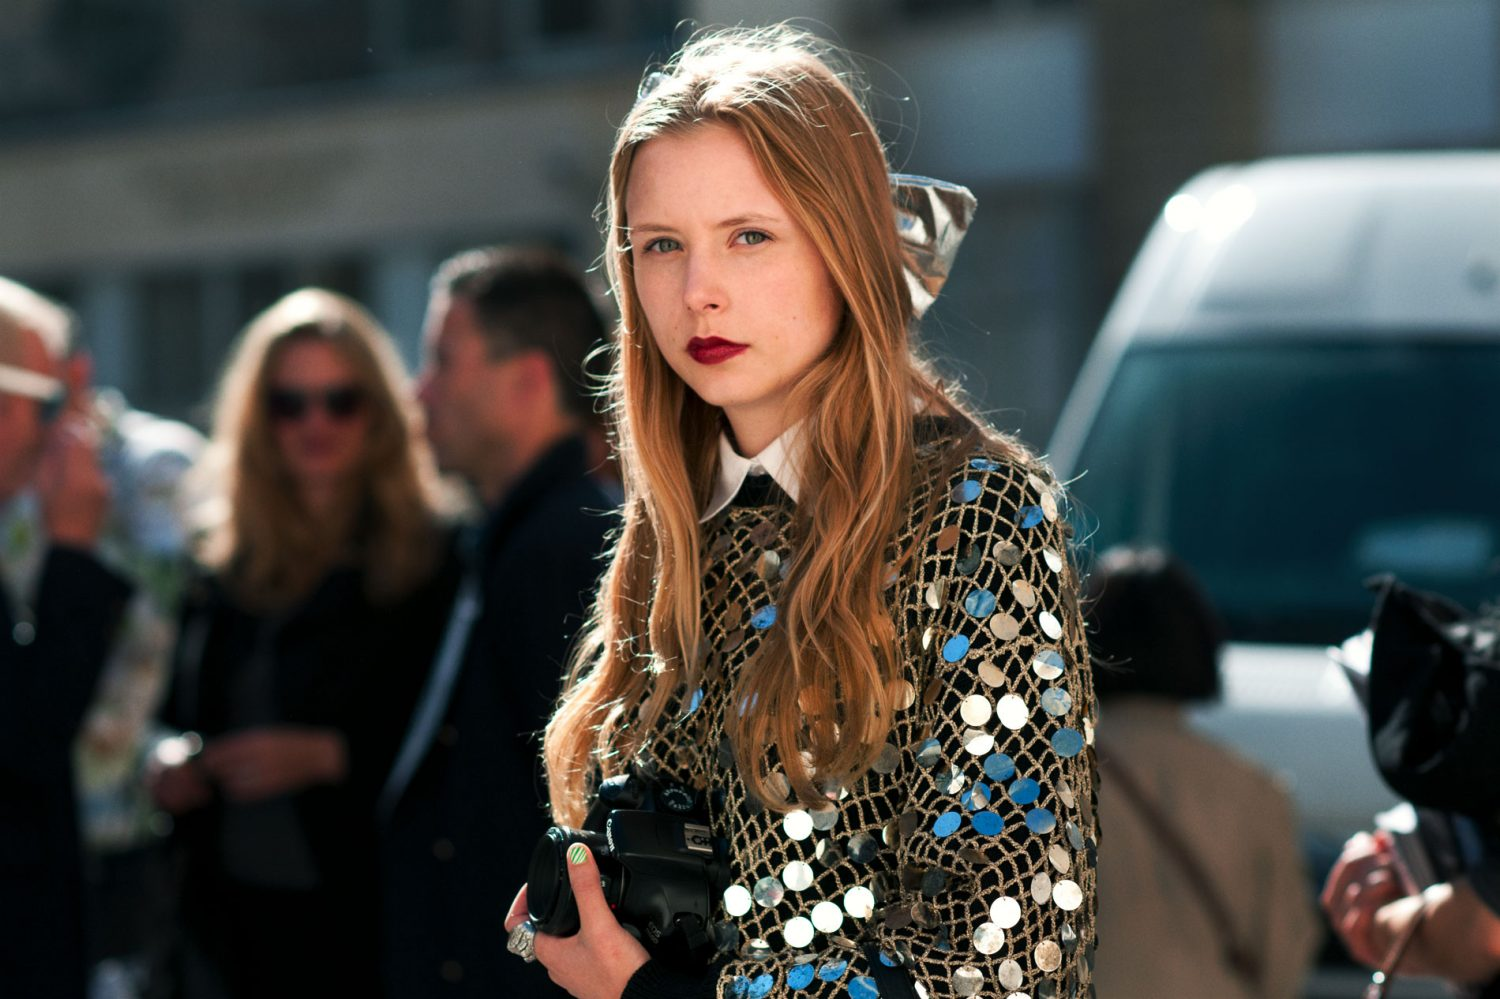 Marie Myrhøj Jensen at Paris Fashion Week Spring/Summer 2013